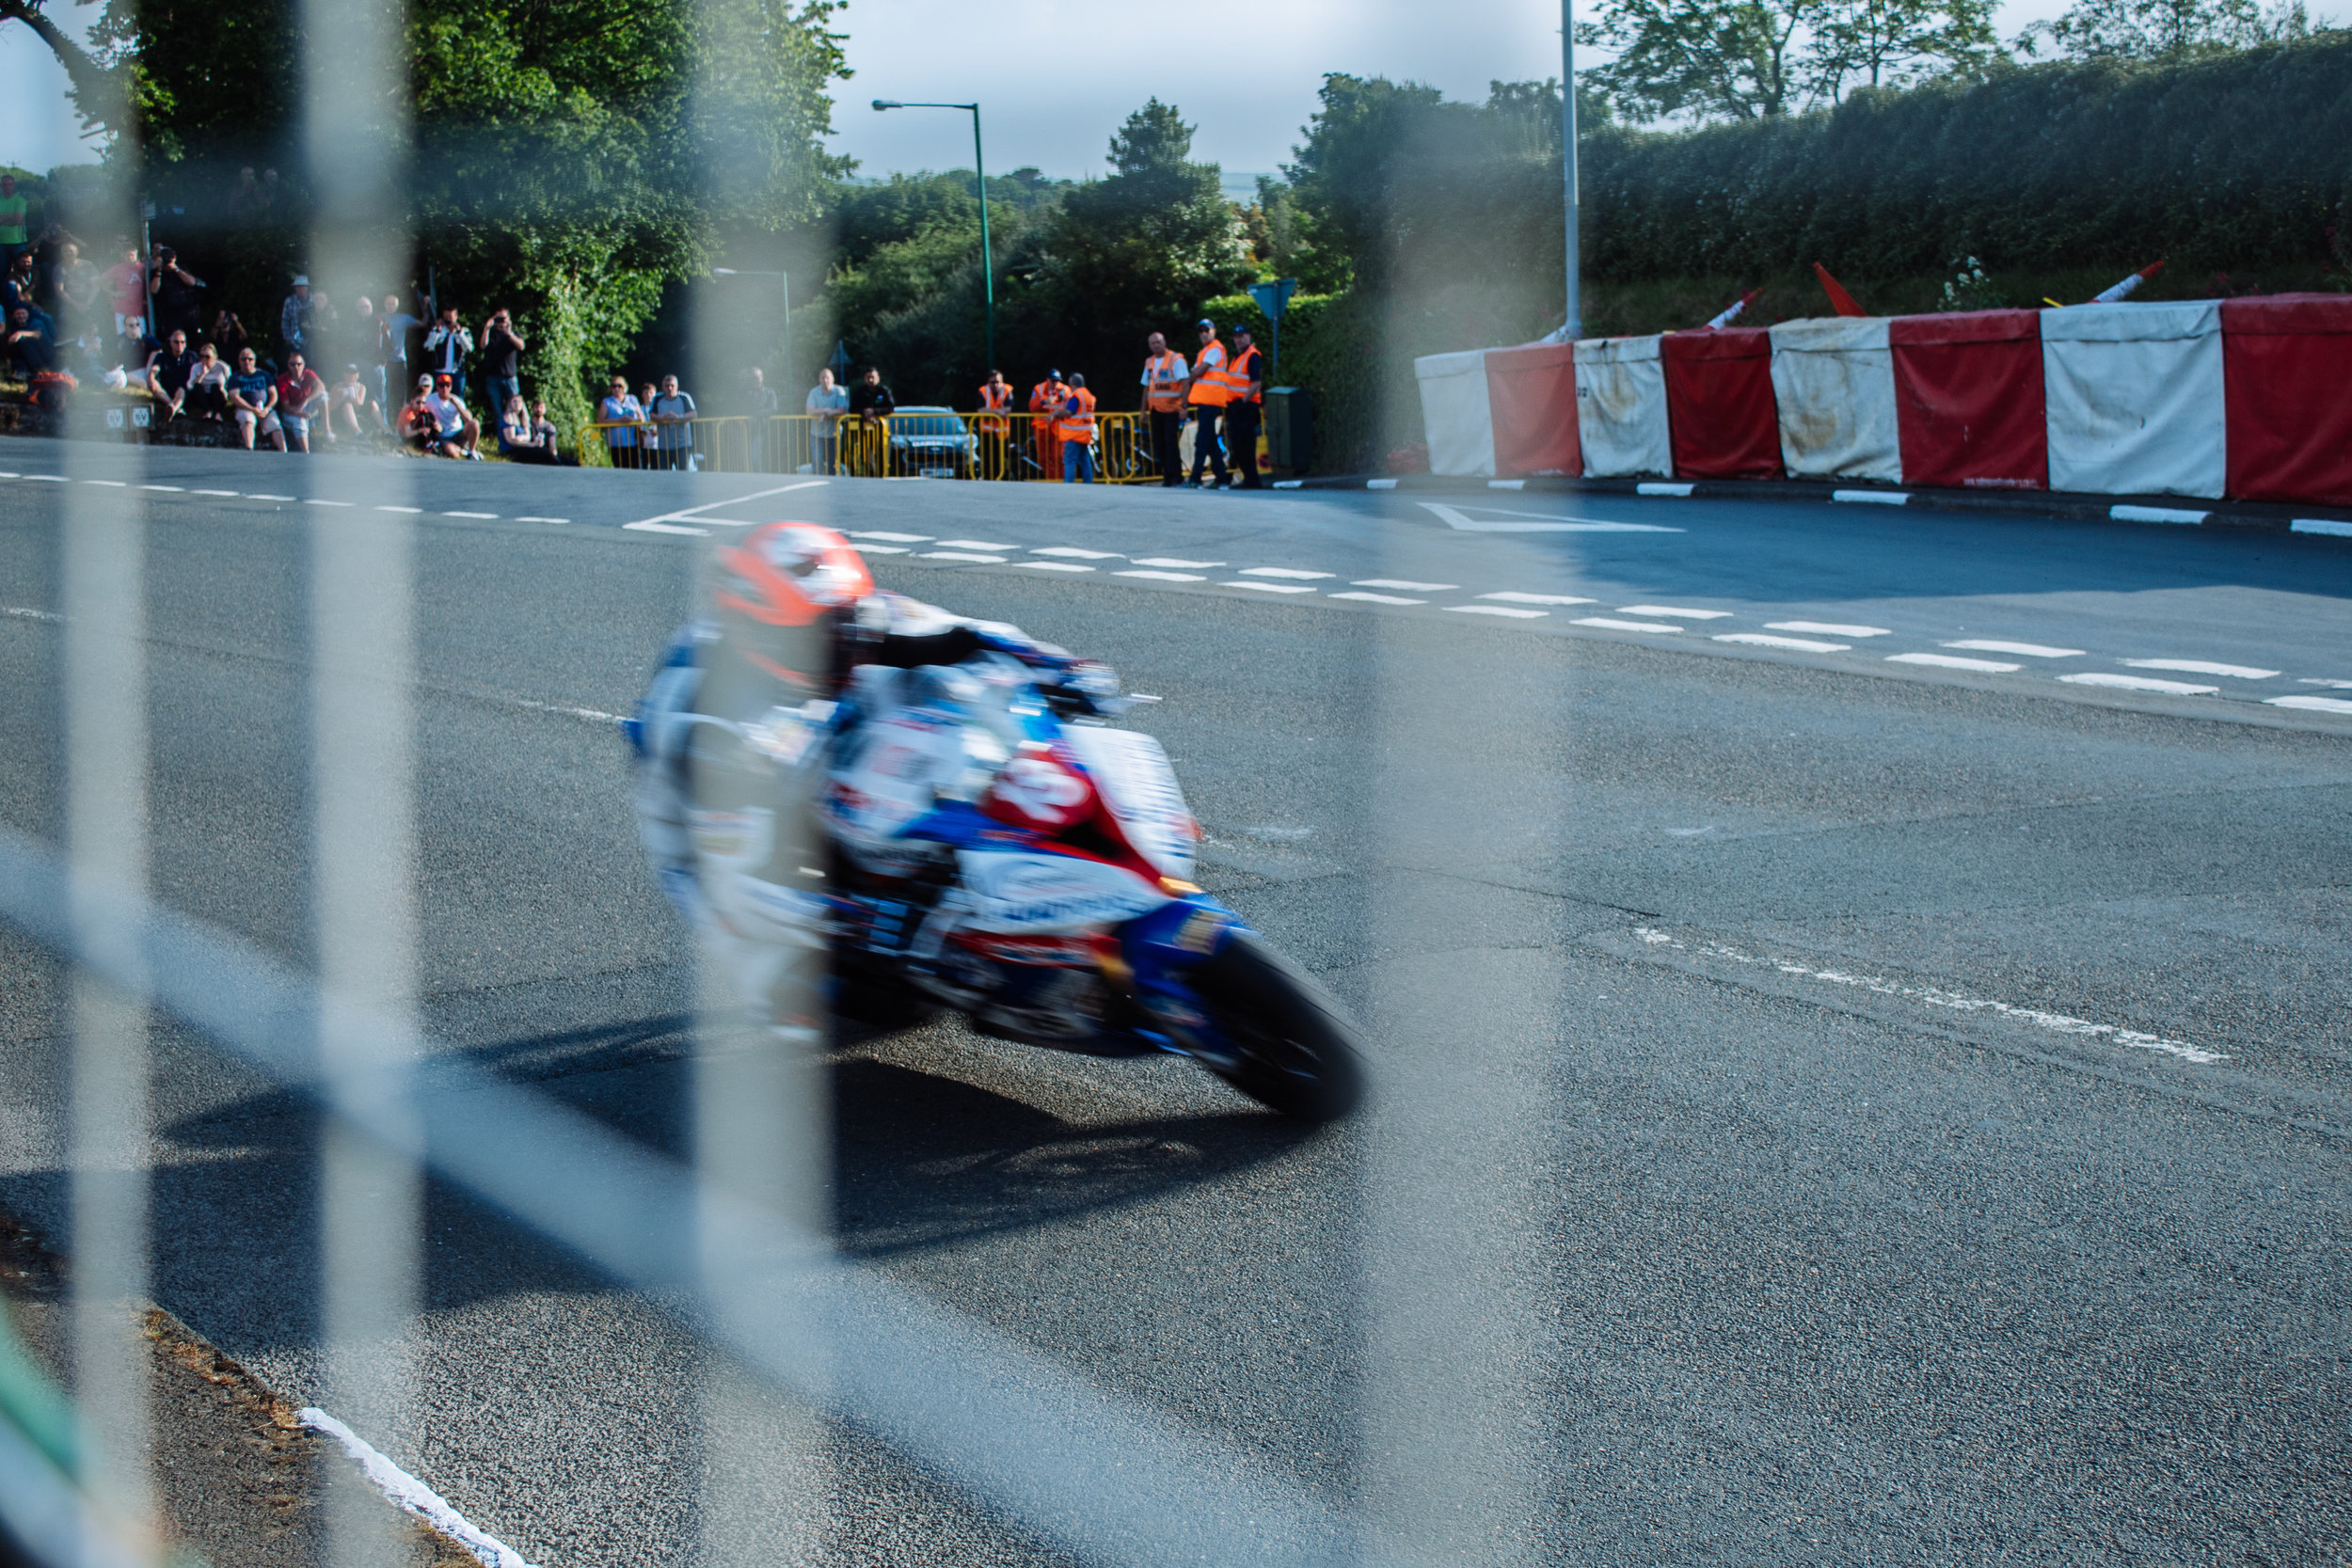 Our first evening watching the TT qualifying, we were absolutely blown away by the speeds that these riders would travel at.